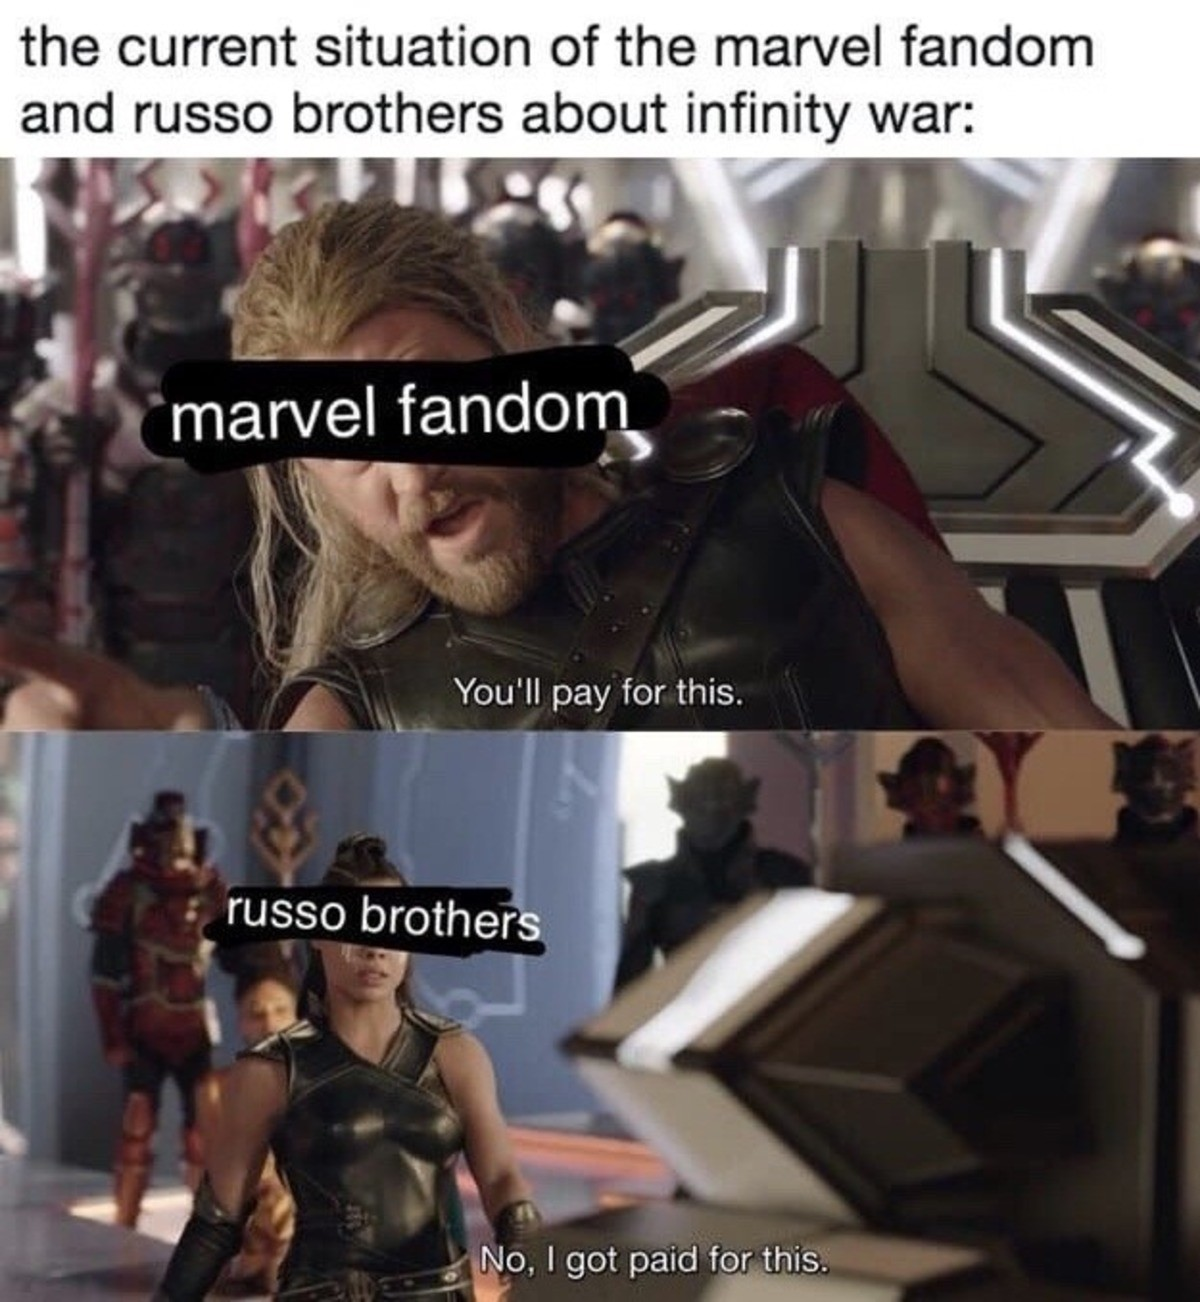 "accurate.. . ll, ' russo brothers !! infinity ""., a funck) rra, if fali, You' ll pay for this. H No. I got paid for this."